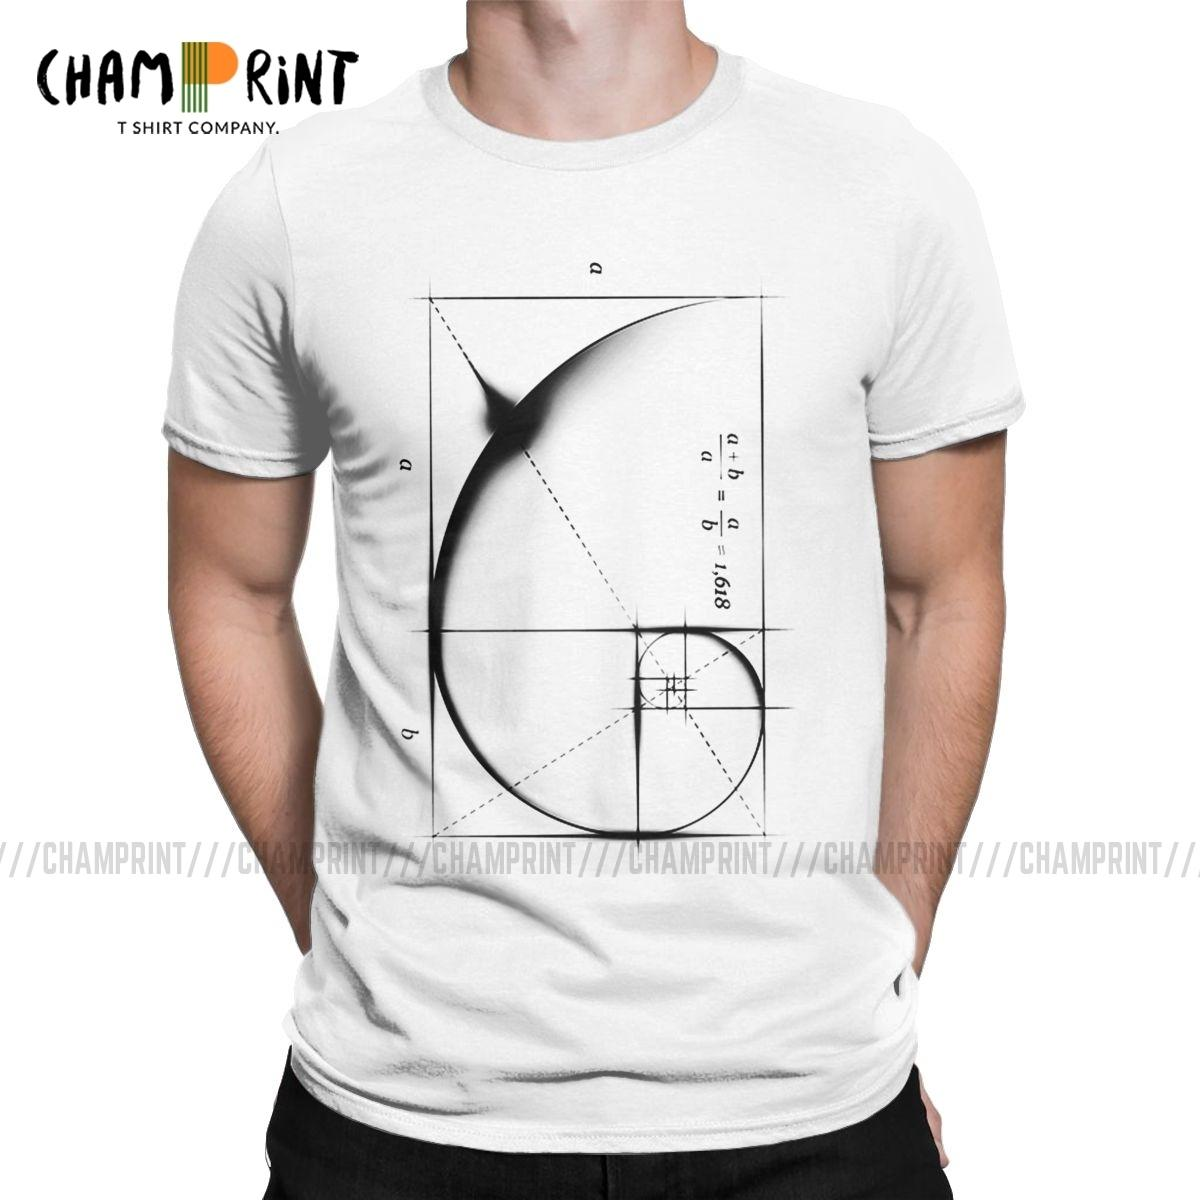 Fibonacci Séquence Golden Ratio Hommes T-shirt Math Math Technique Tee-shirt Vintage T-shirt Rond Collier T-shirts Plus Vêtements de taille L0223